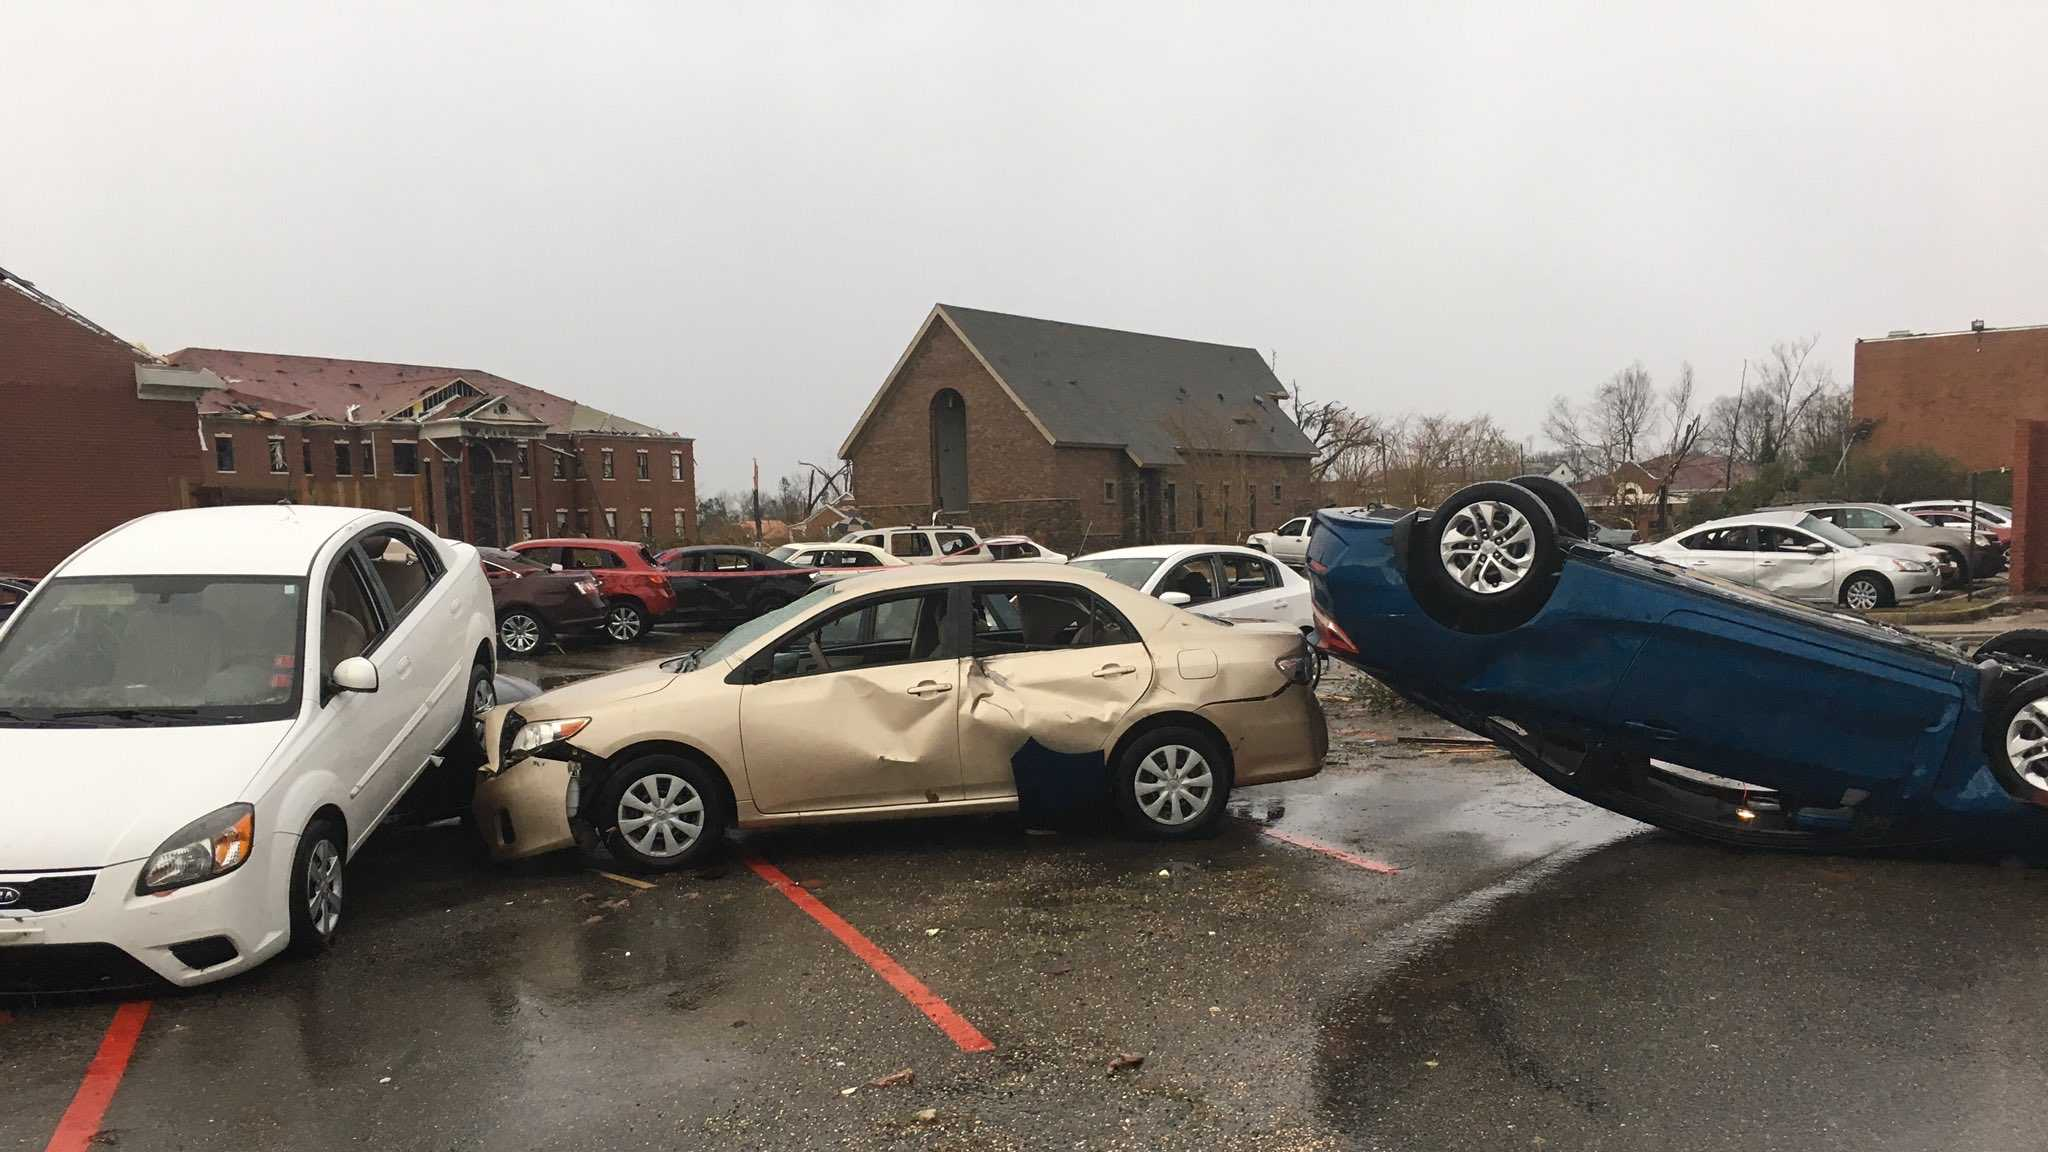 Cars are damaged at William Carey University after a tornado ripped through Hattiesburg, Miss., on Jan. 21, 2017.